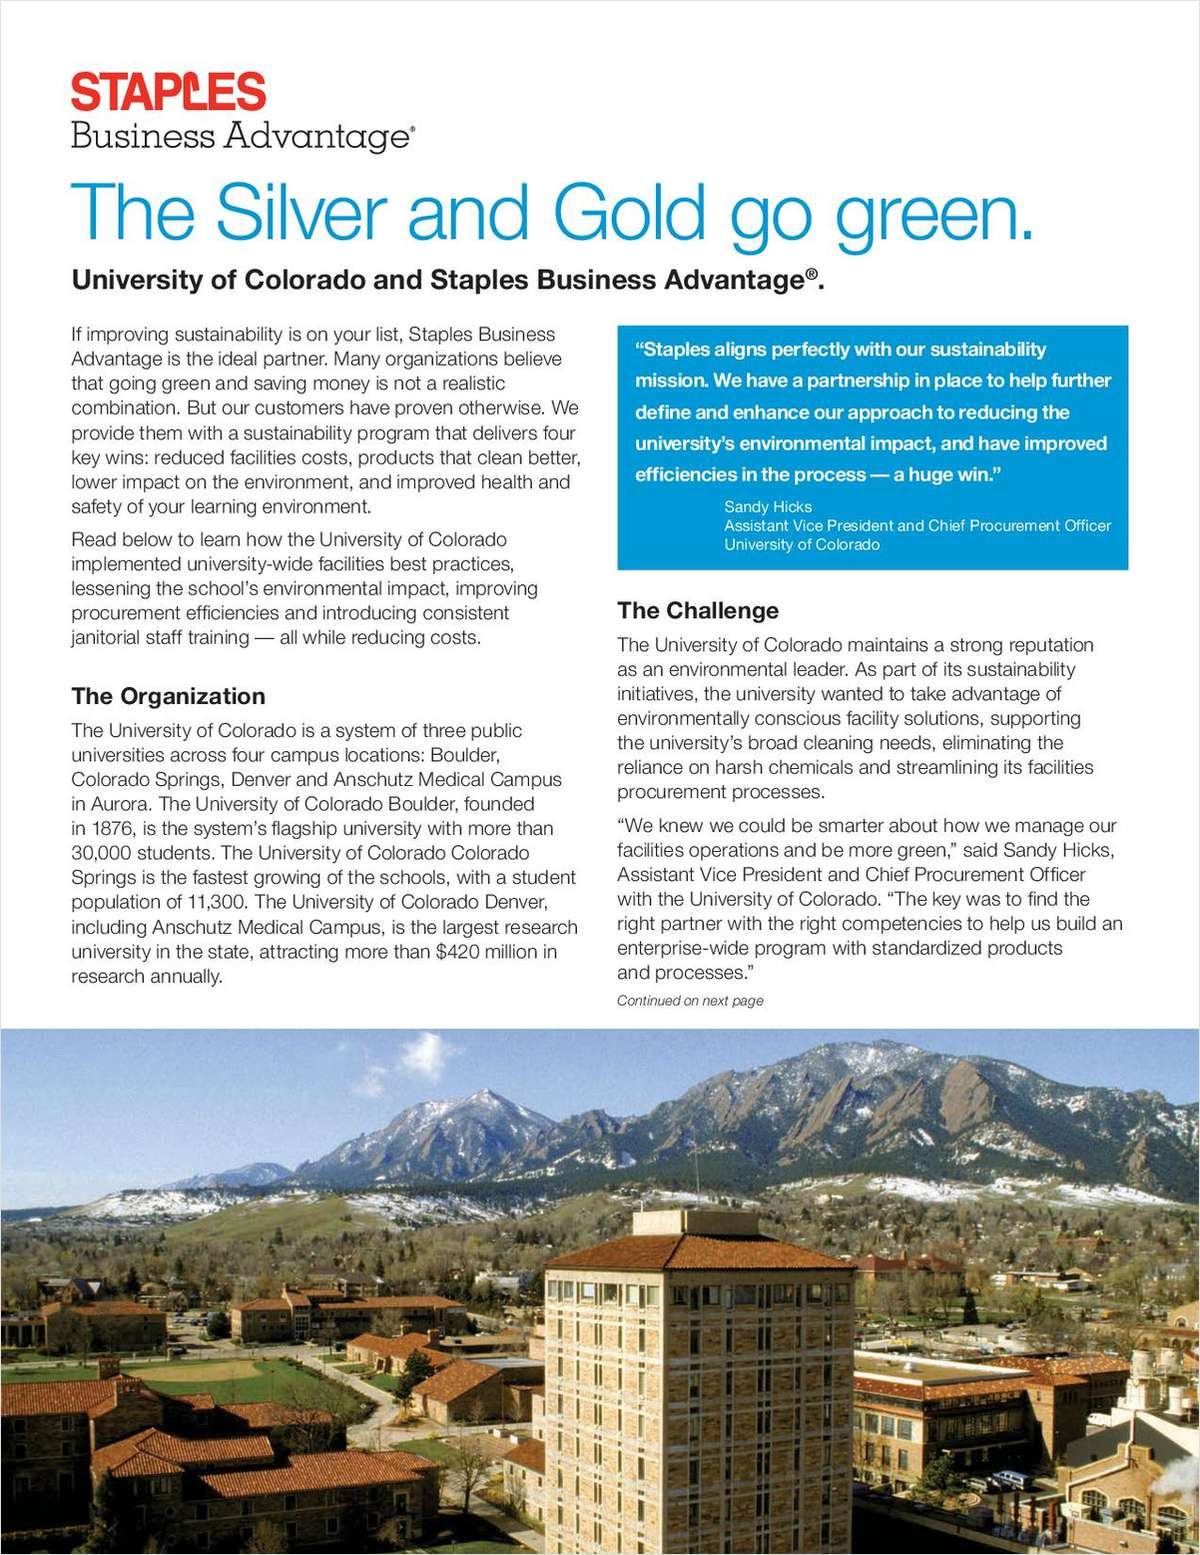 The Silver and Gold Go Green